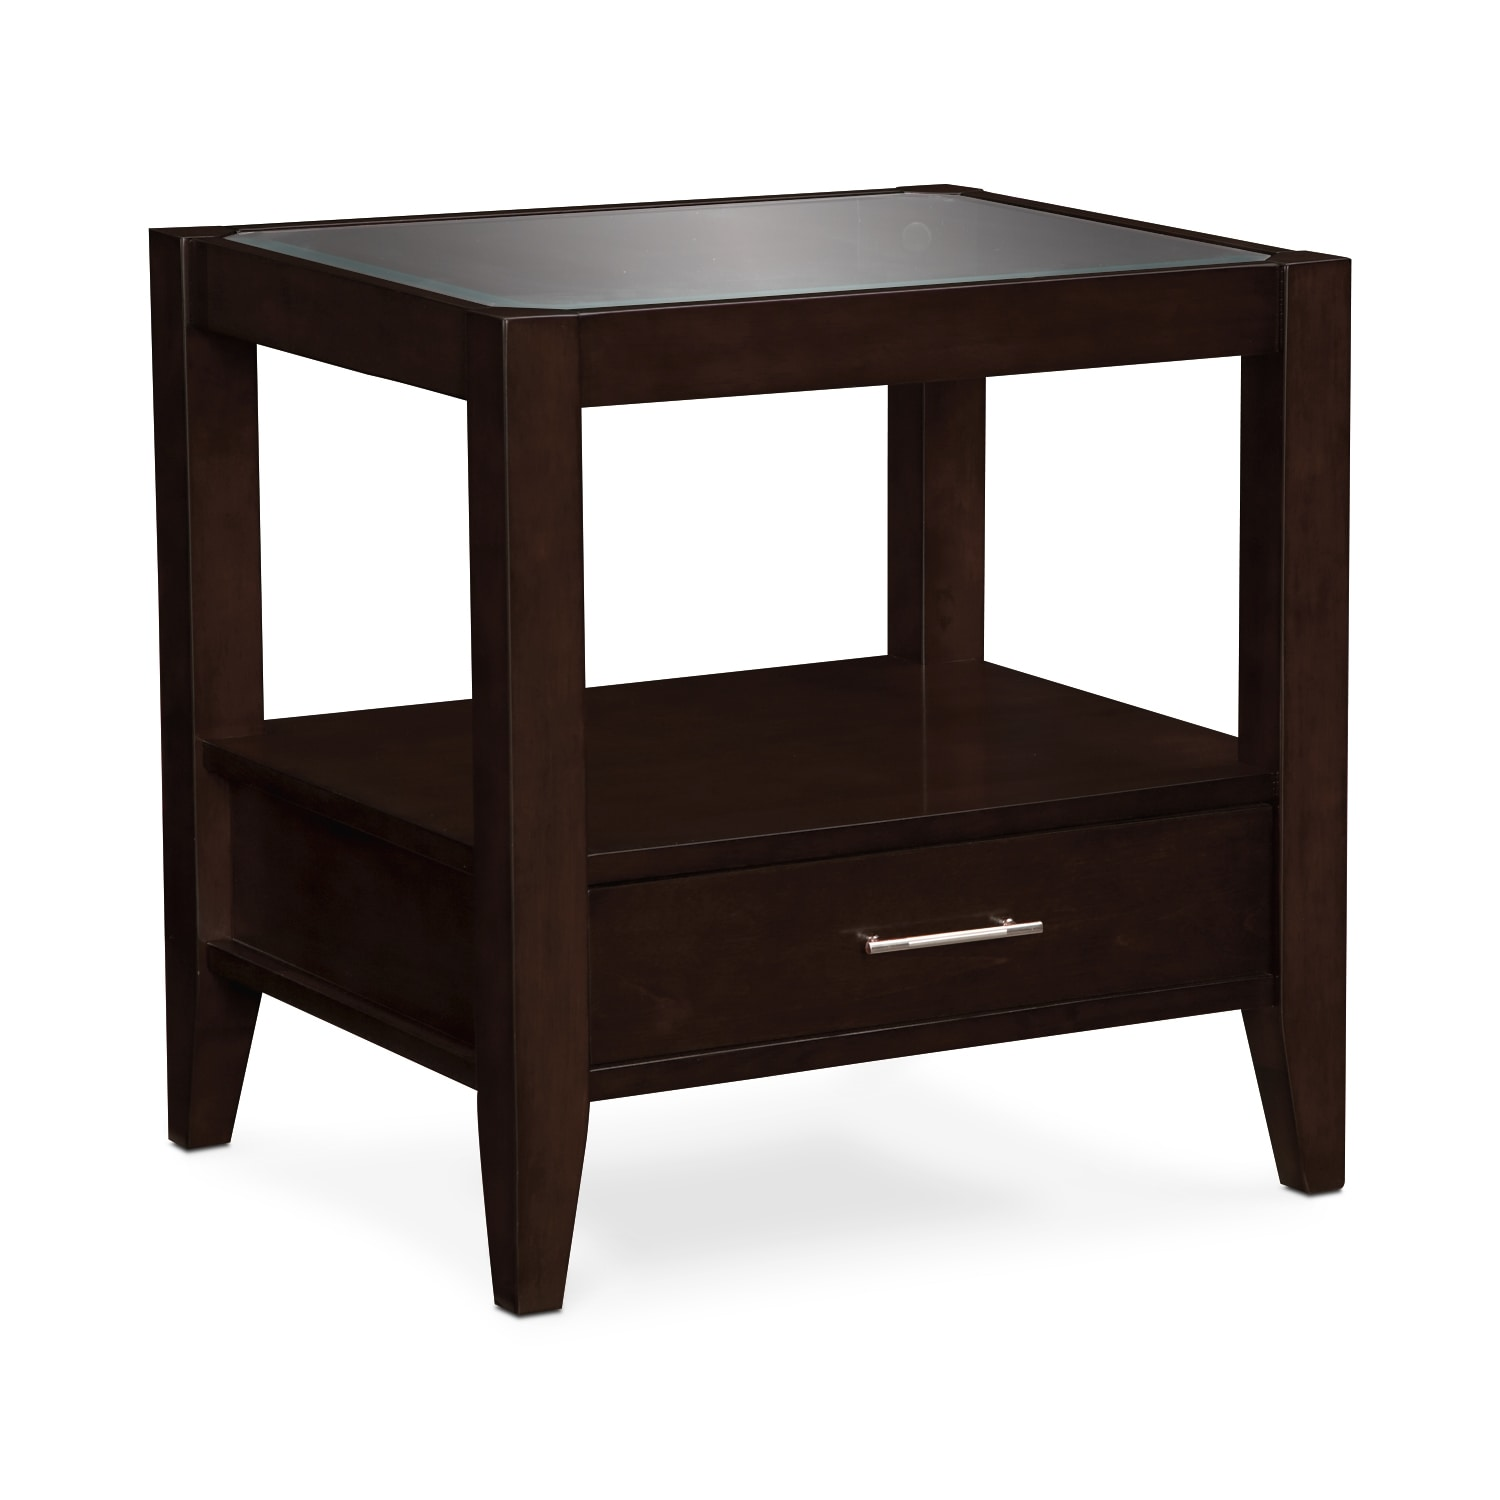 Clarity End Table - Chocolate